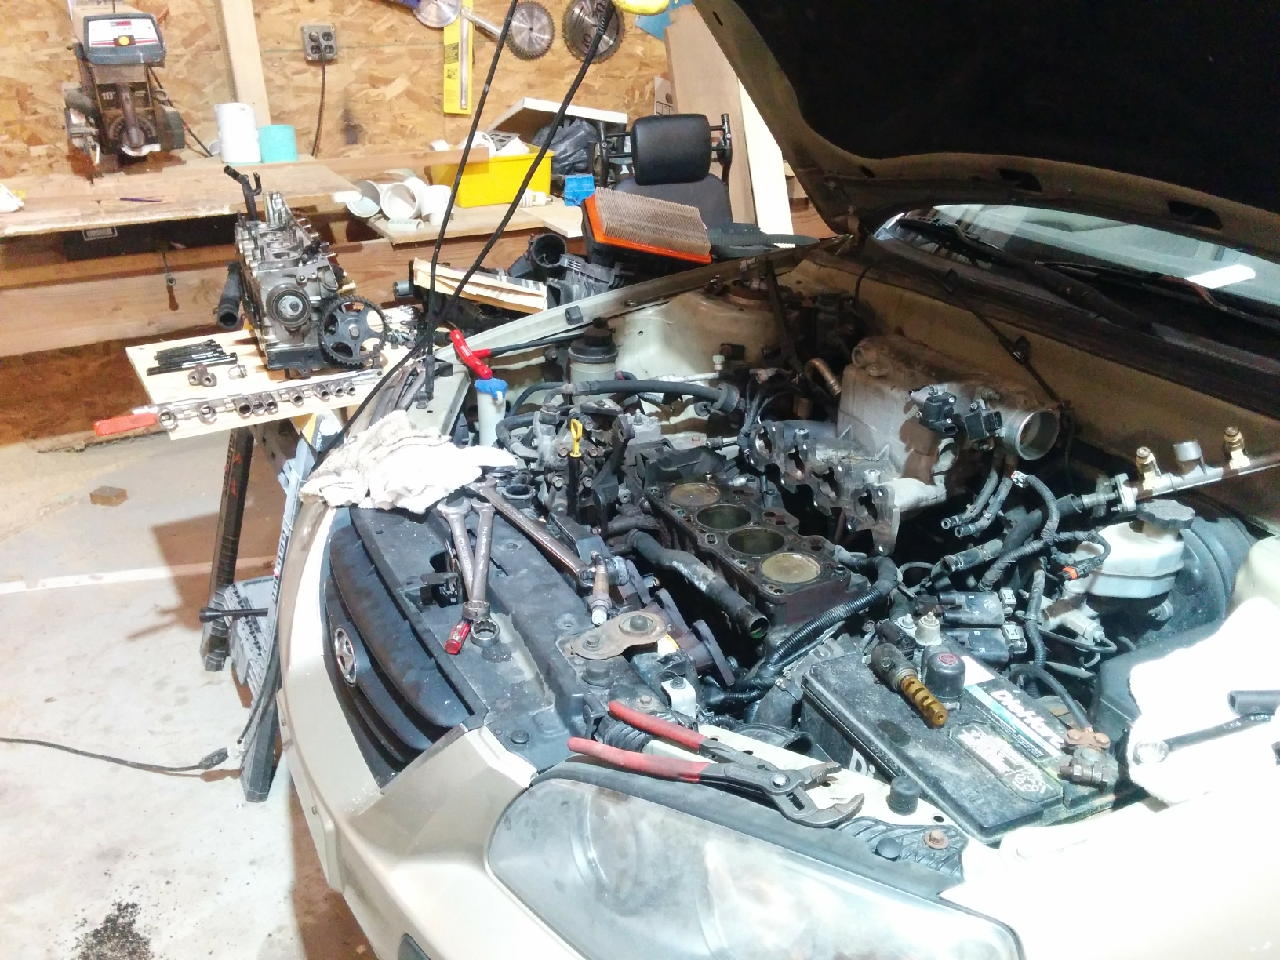 My car with the engine head removed, exposing the pistons in the combustion chambers.